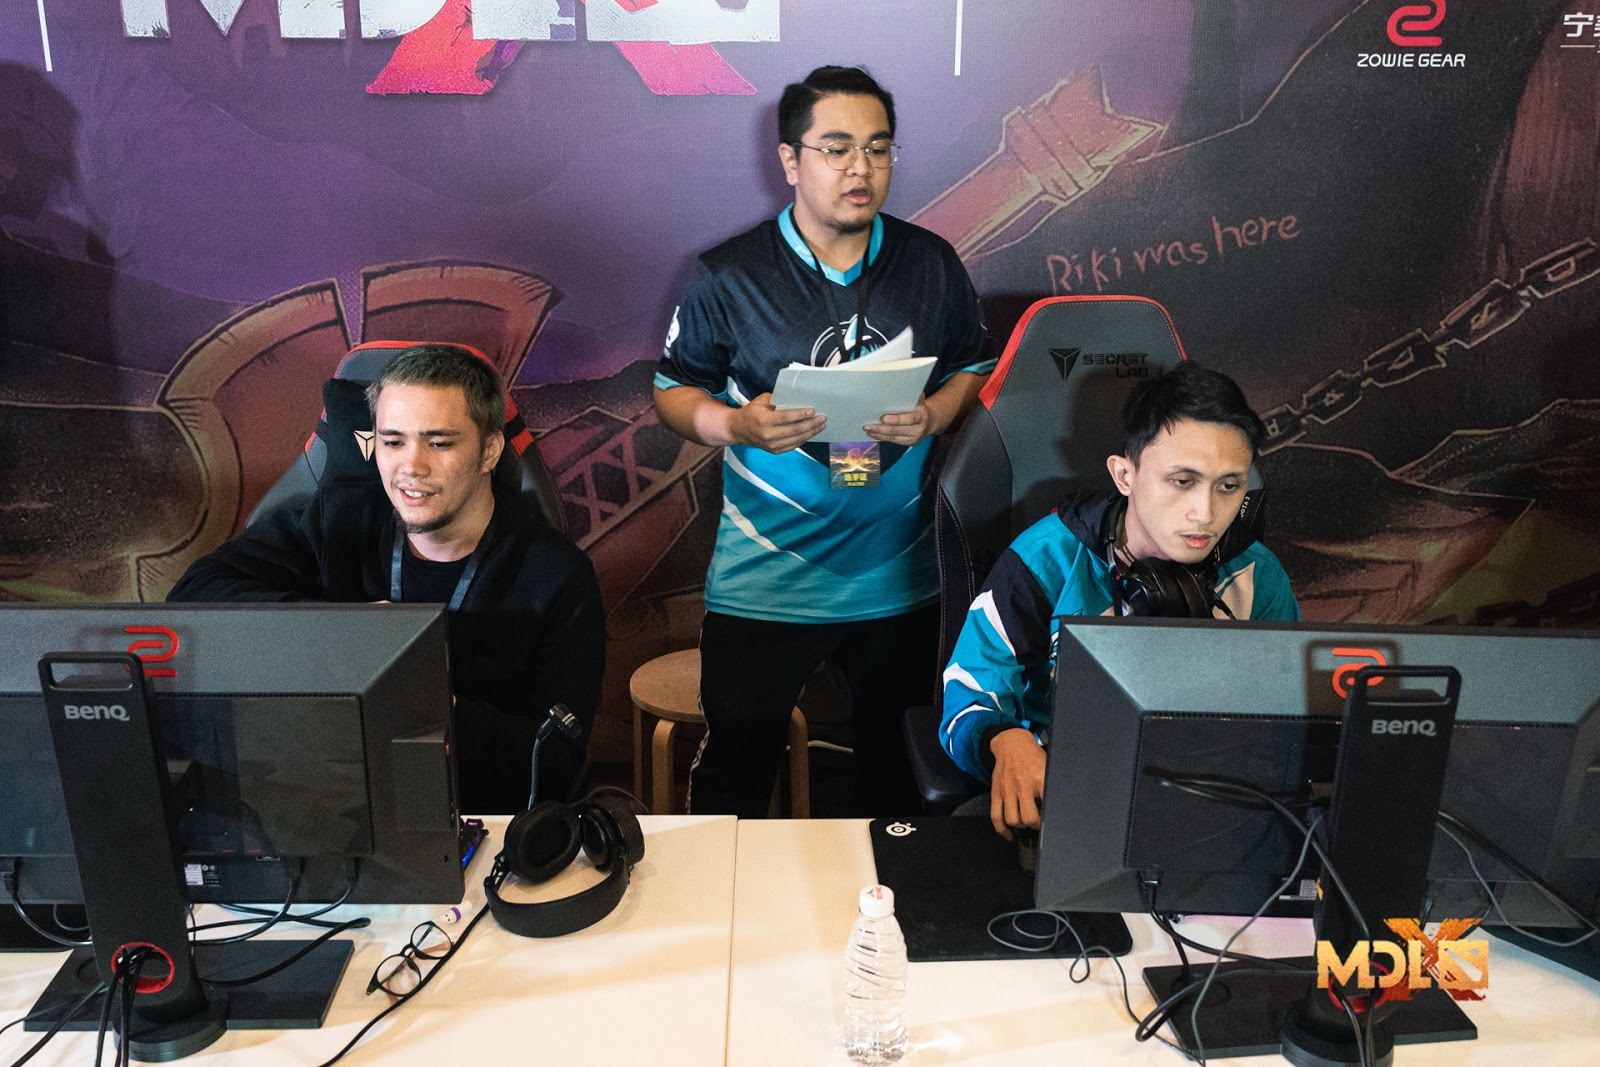 2 Team Adroit players sitting in a tournament booth with their coach behind them